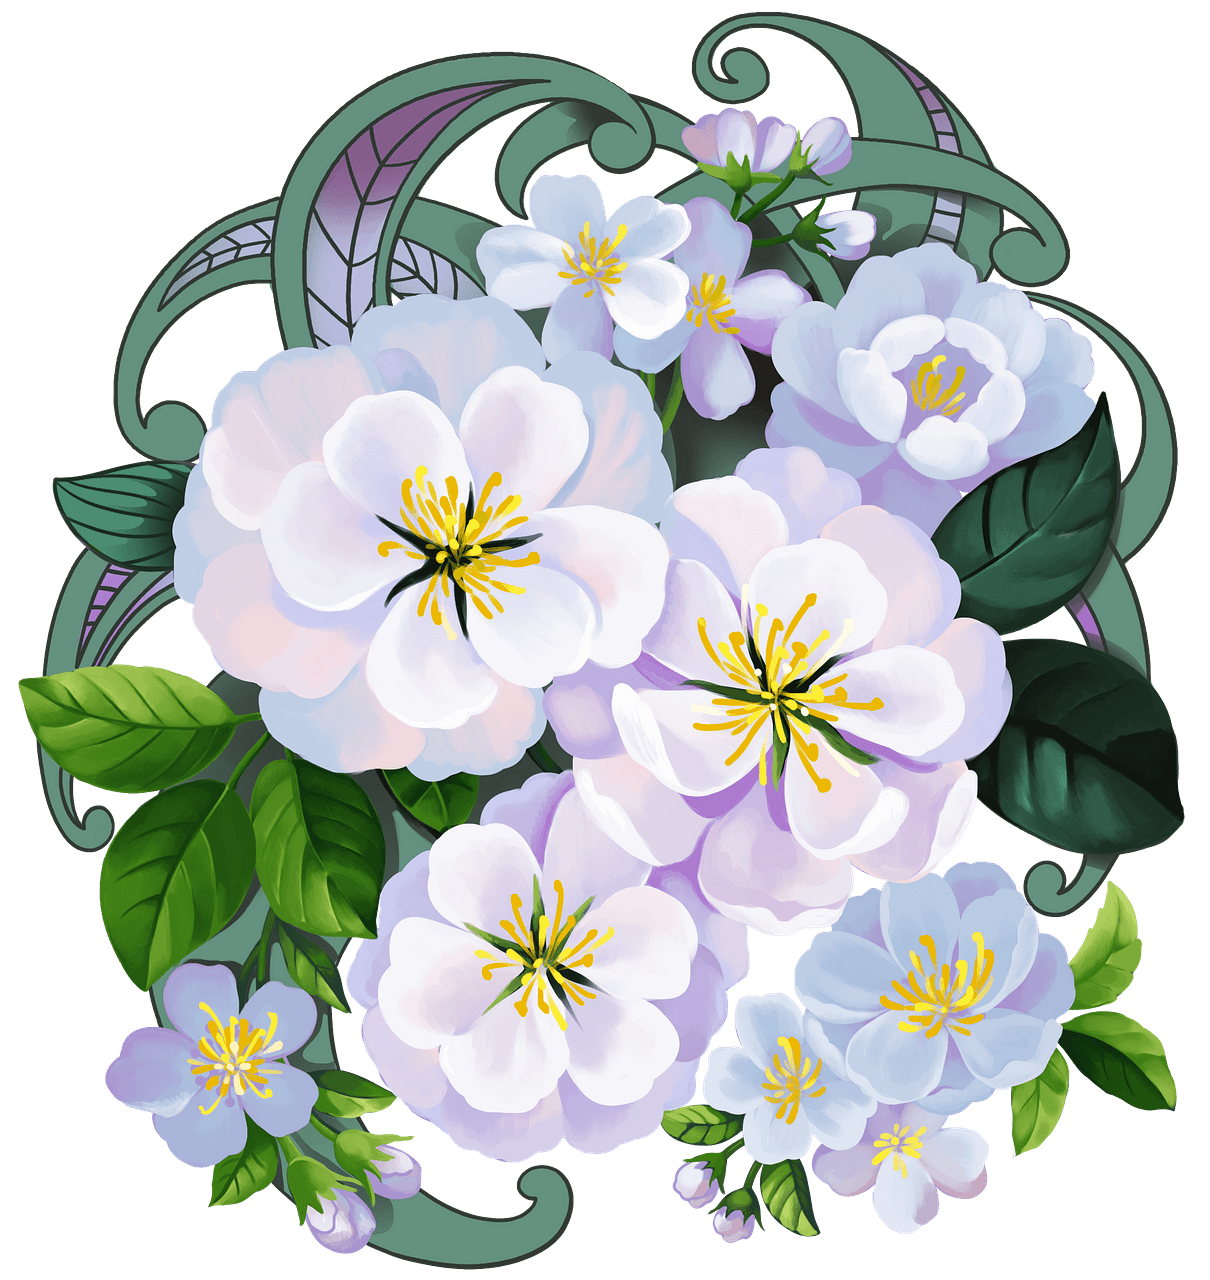 White flowers clipart. Free download..